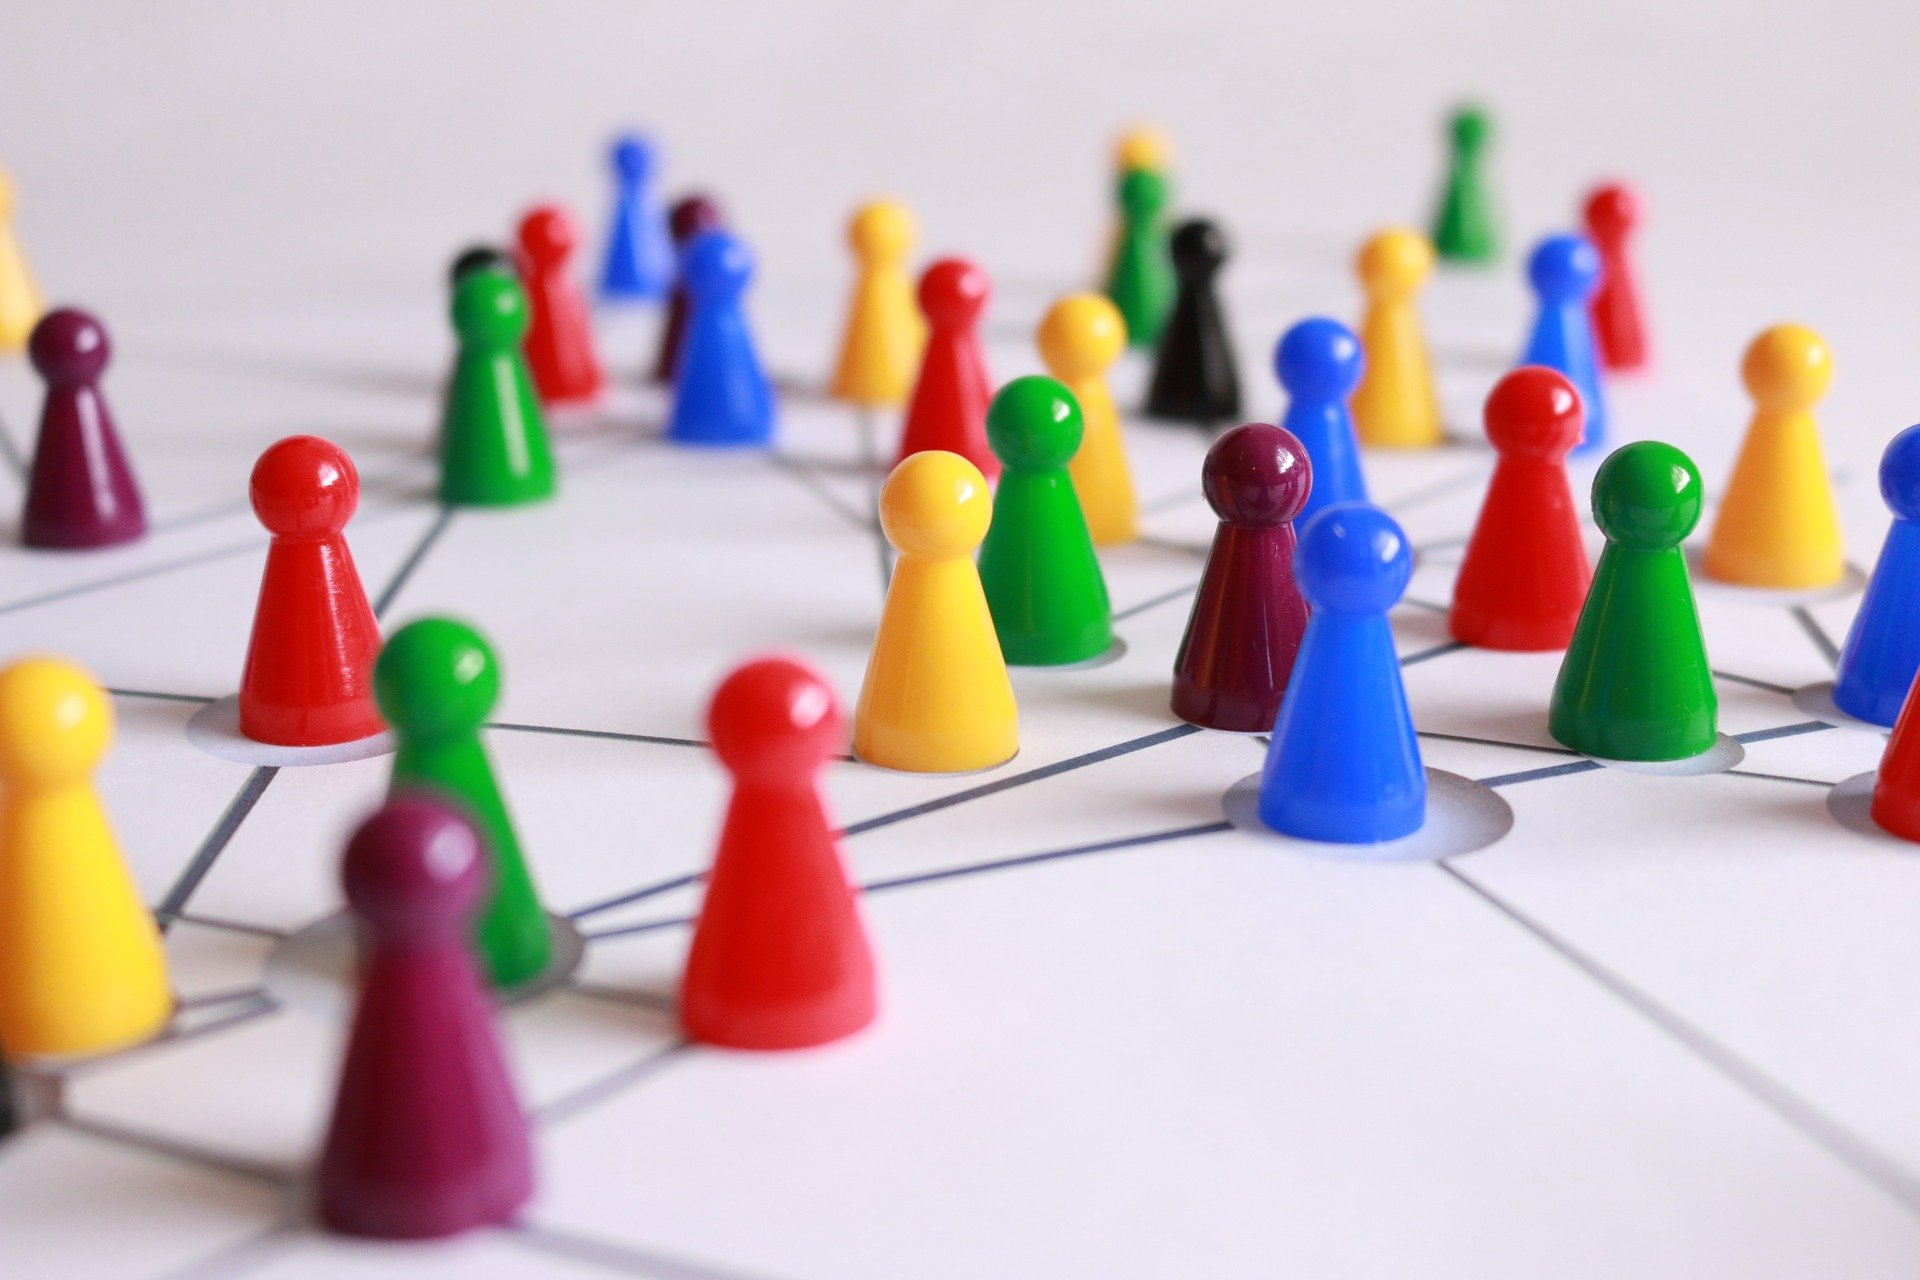 More than twenty plastic game pieces in many different colors are arranged on a board, with lines drawn between them to mark the complex network that ties them together.